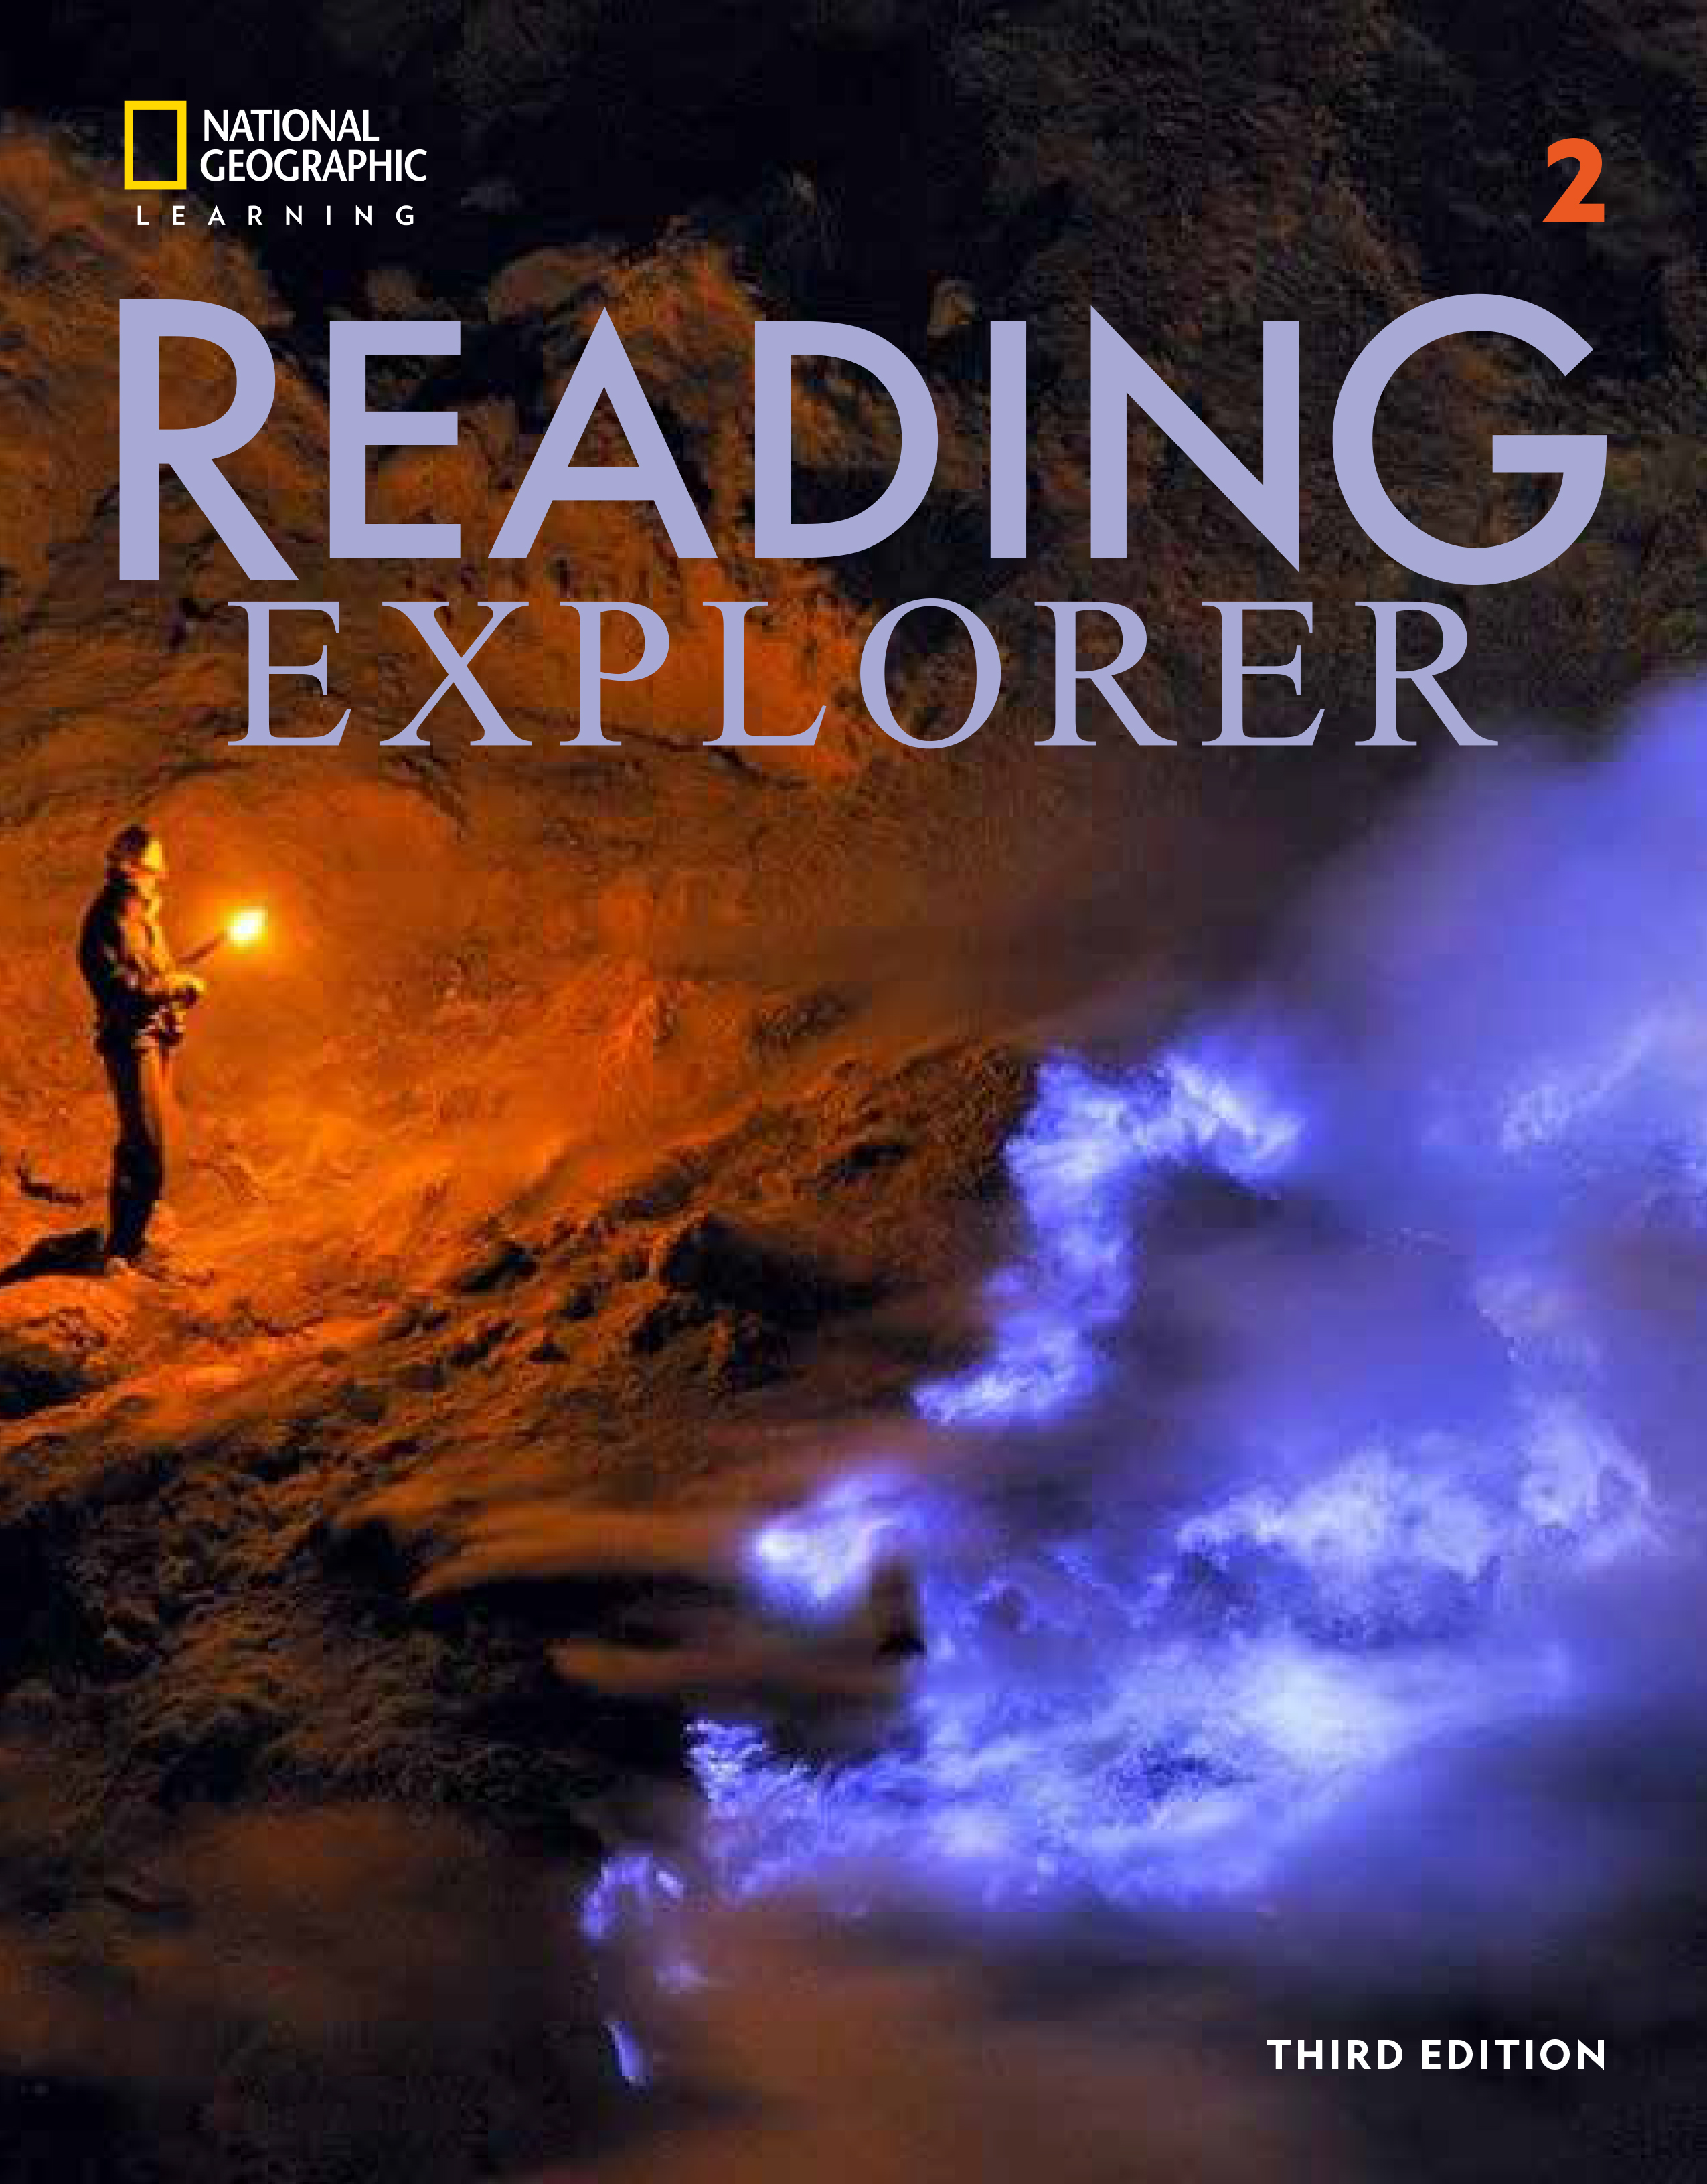 Reading explorer 3/E 2 SB TEACHER GUIDE 대표이미지